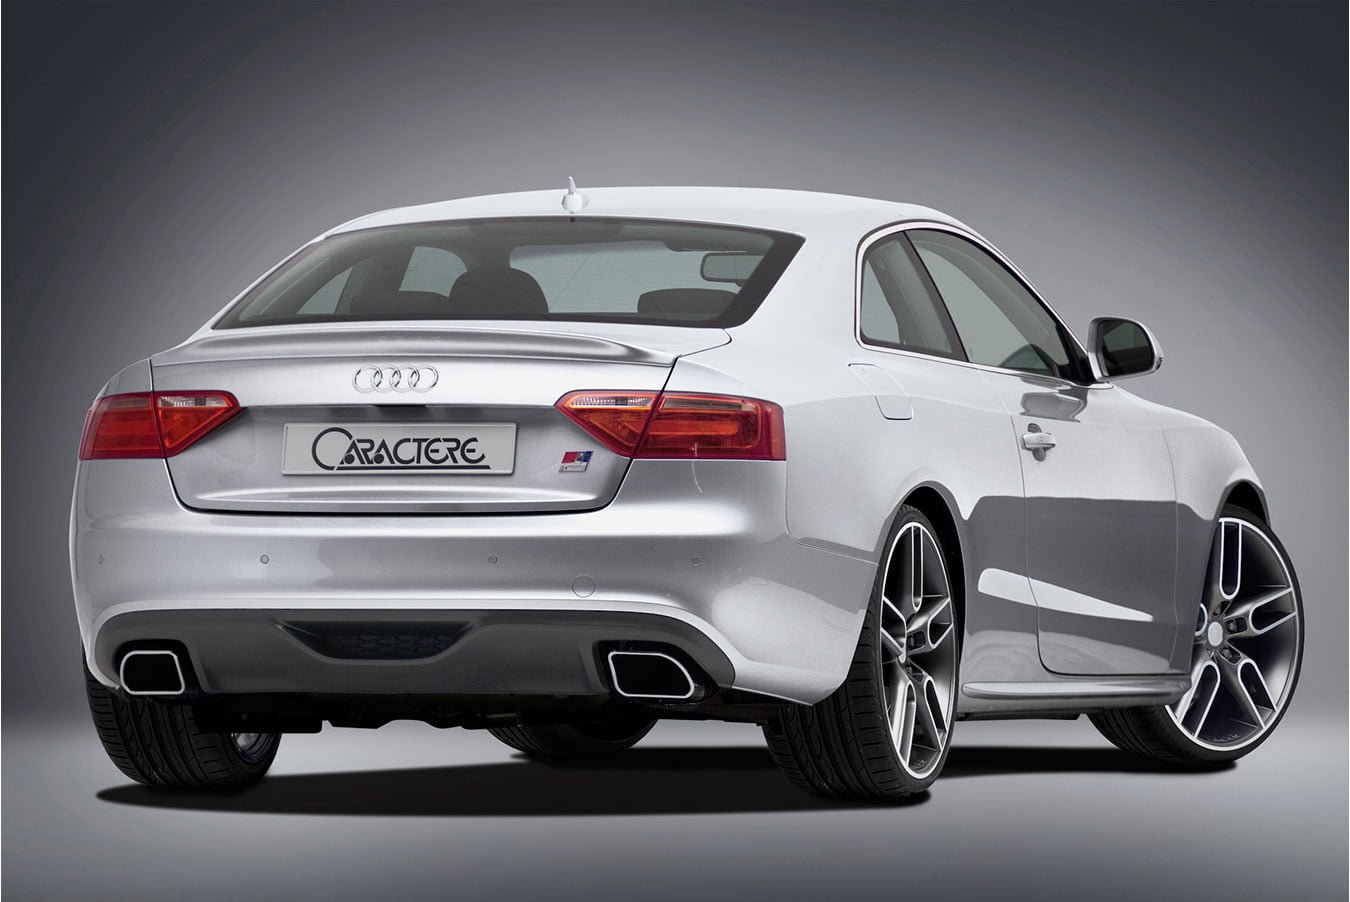 Caractere Rear Diffuser with 2 Mufflers, fits Audi A5 B8.0 S-Line 2.7-3.0 TDI / 3.2 V6